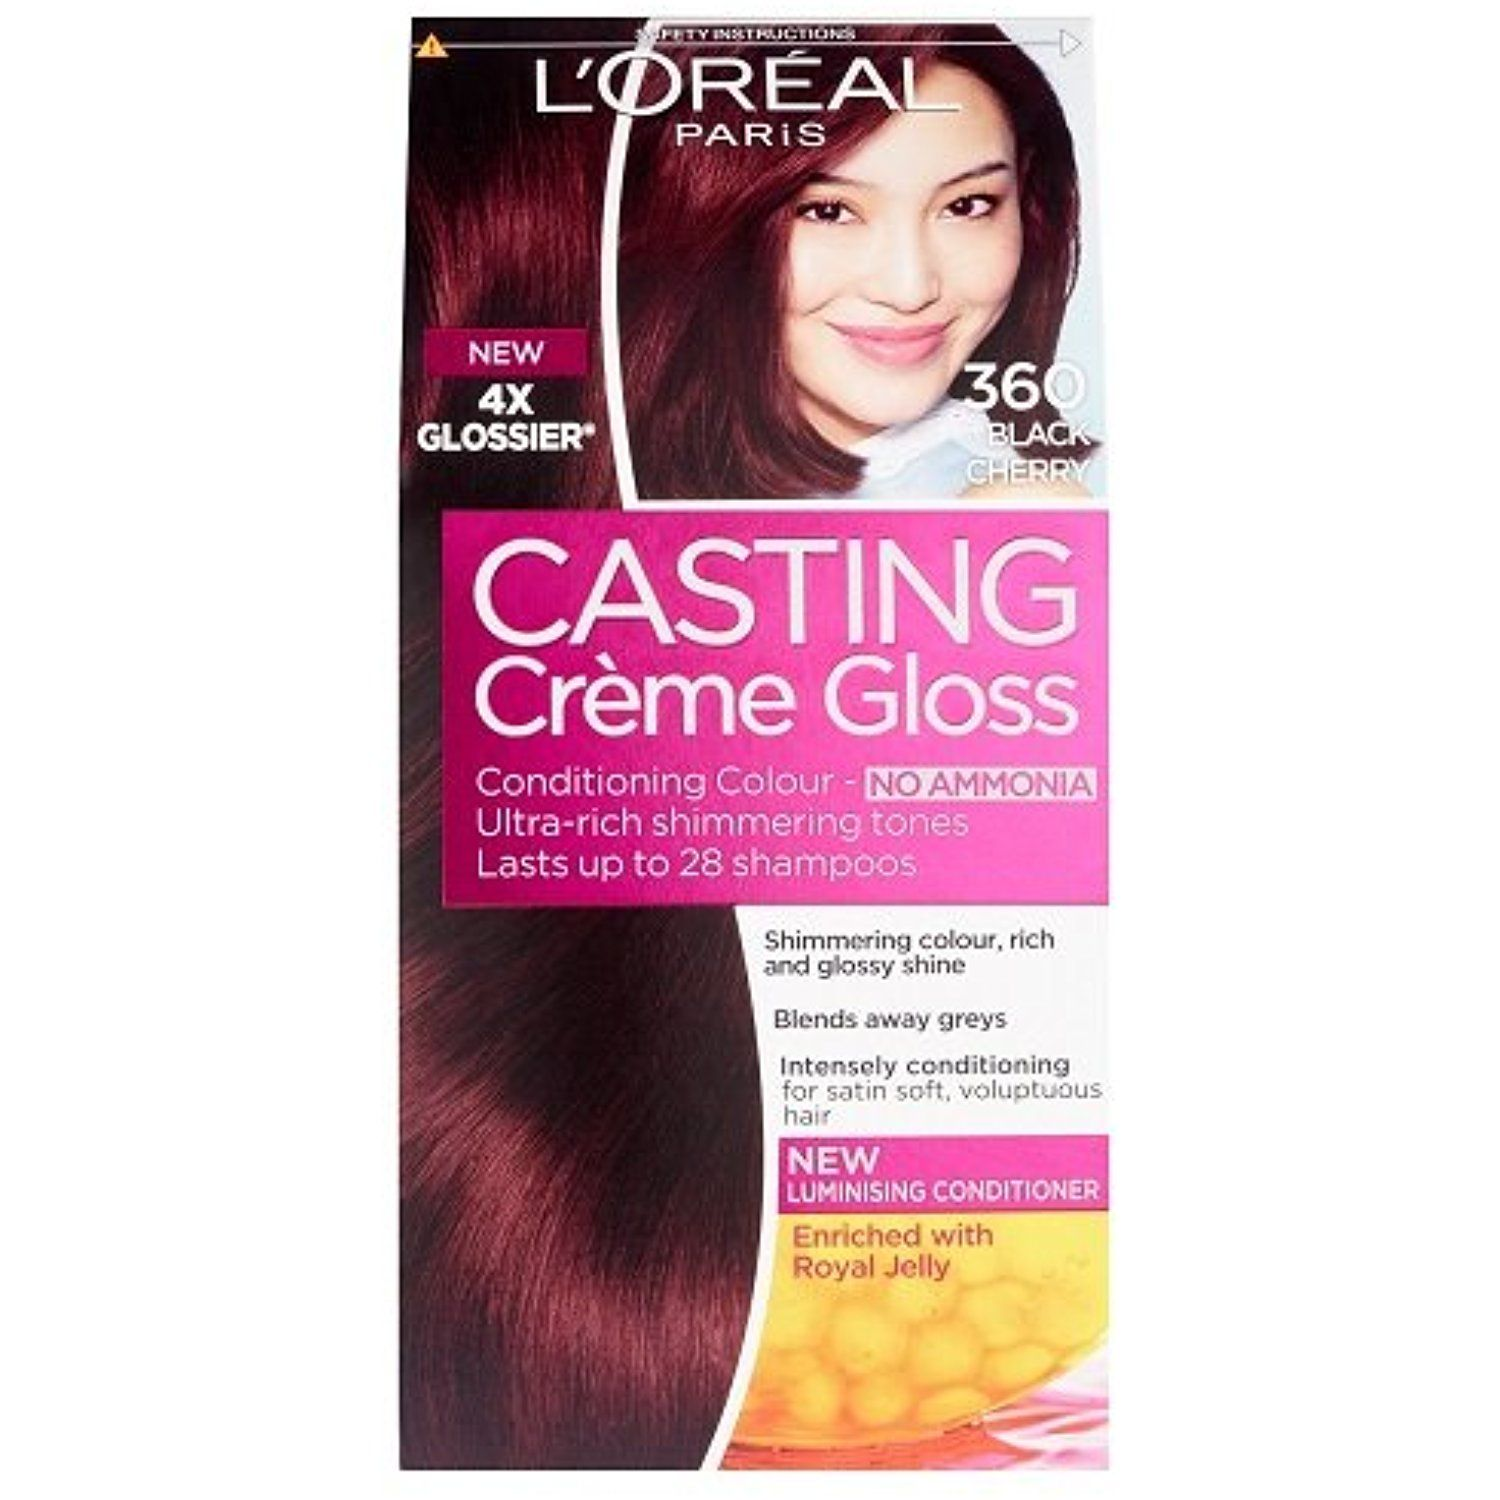 L Oreal Paris Casting Creme Gloss Hair Colourant 360 Black Cherry Read More At The Image Link This Is An Hair Color Chocolate Chocolate Hair Loreal Paris